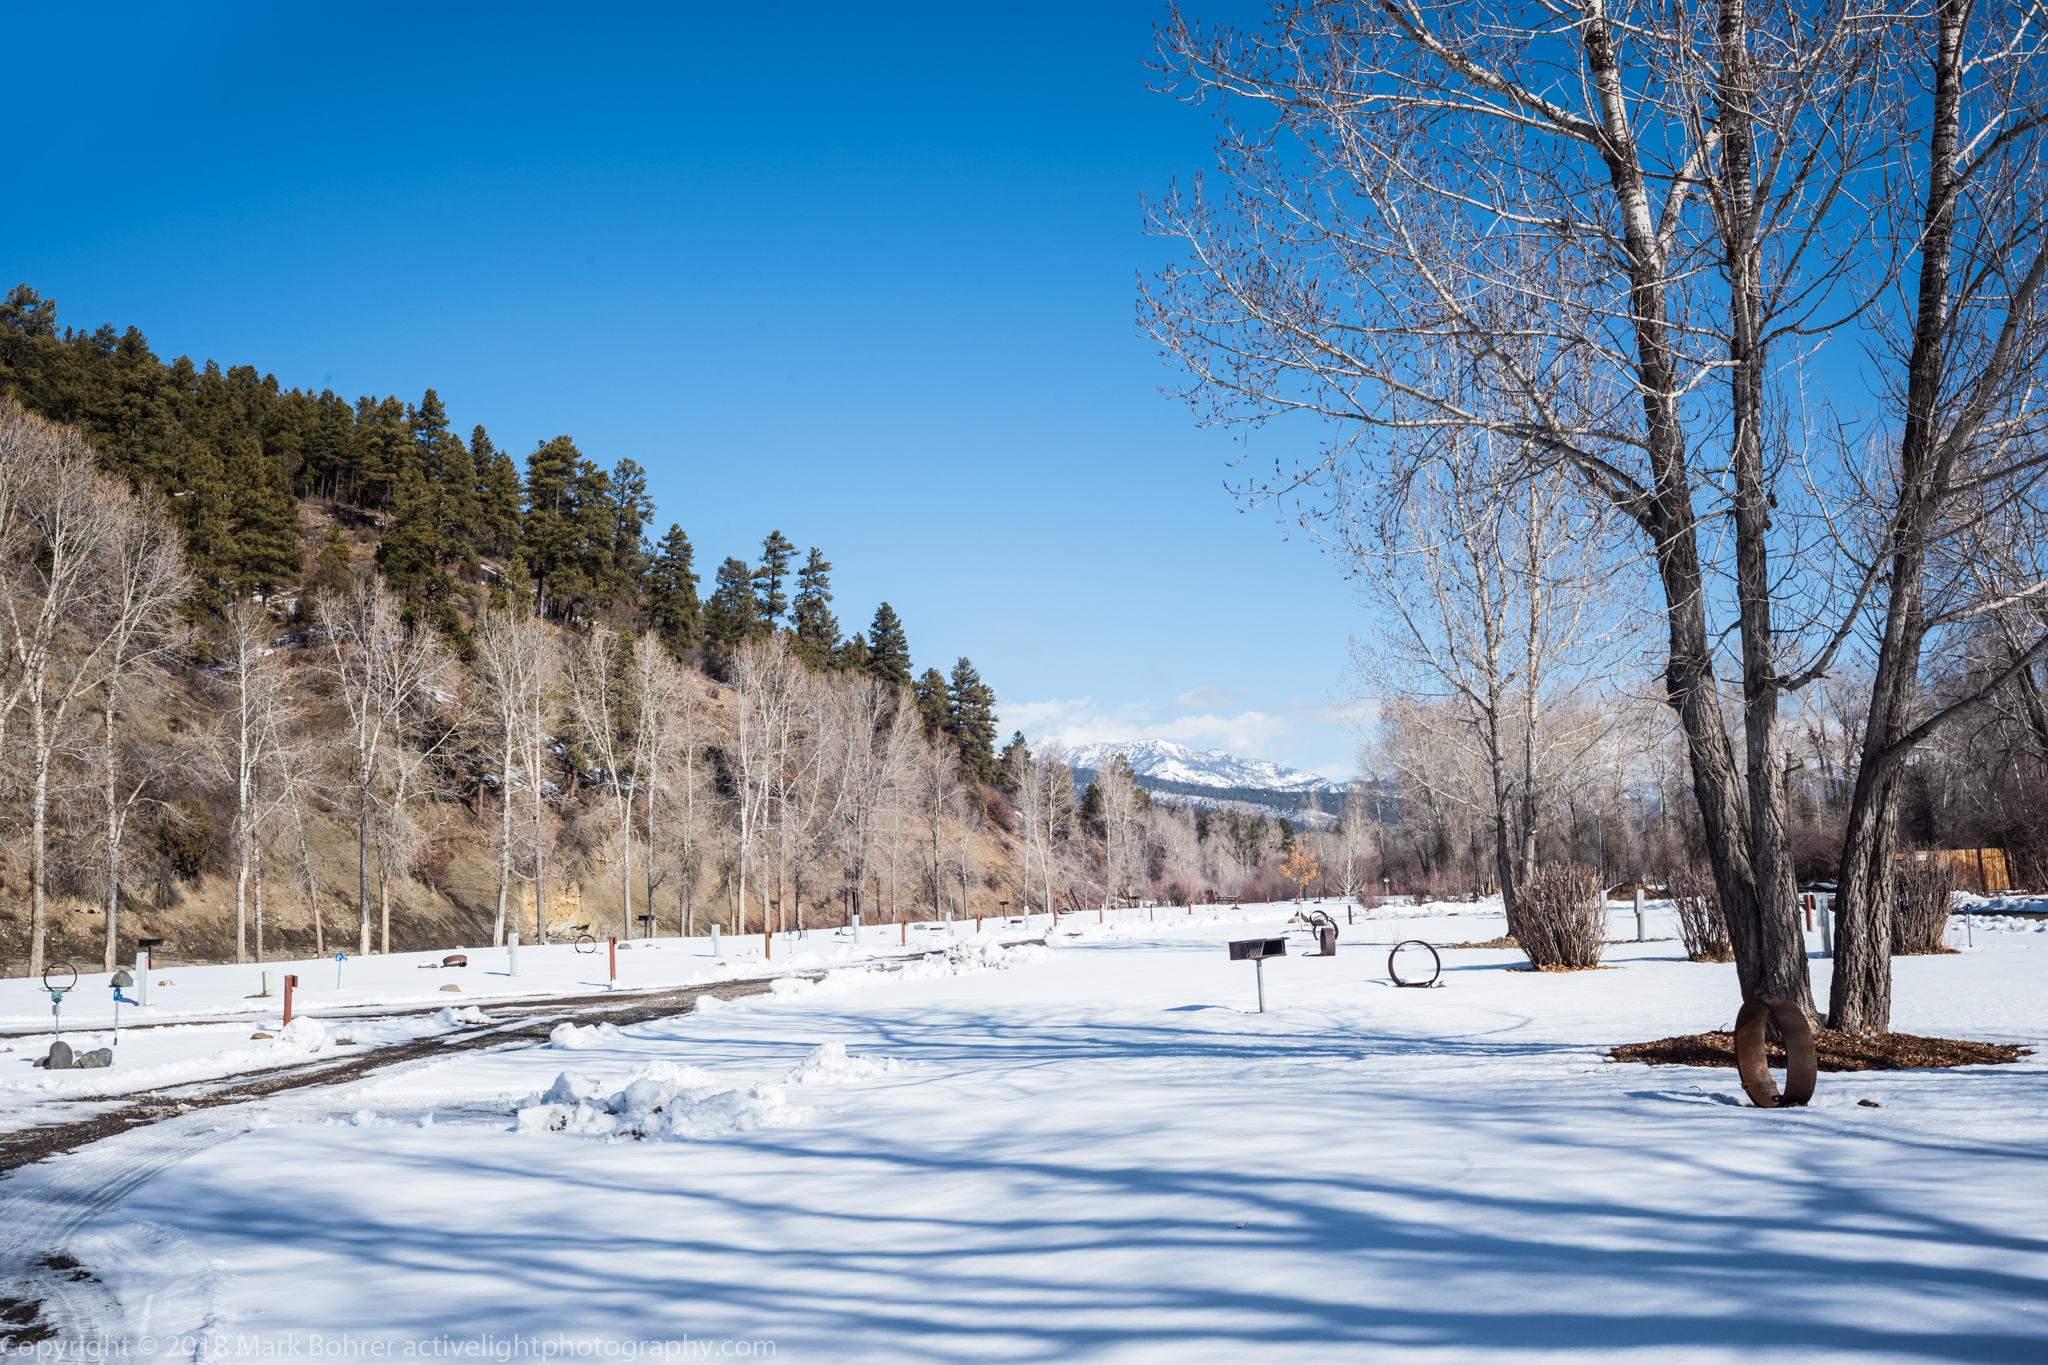 A snowy February day at Pagosa Riverside Campground